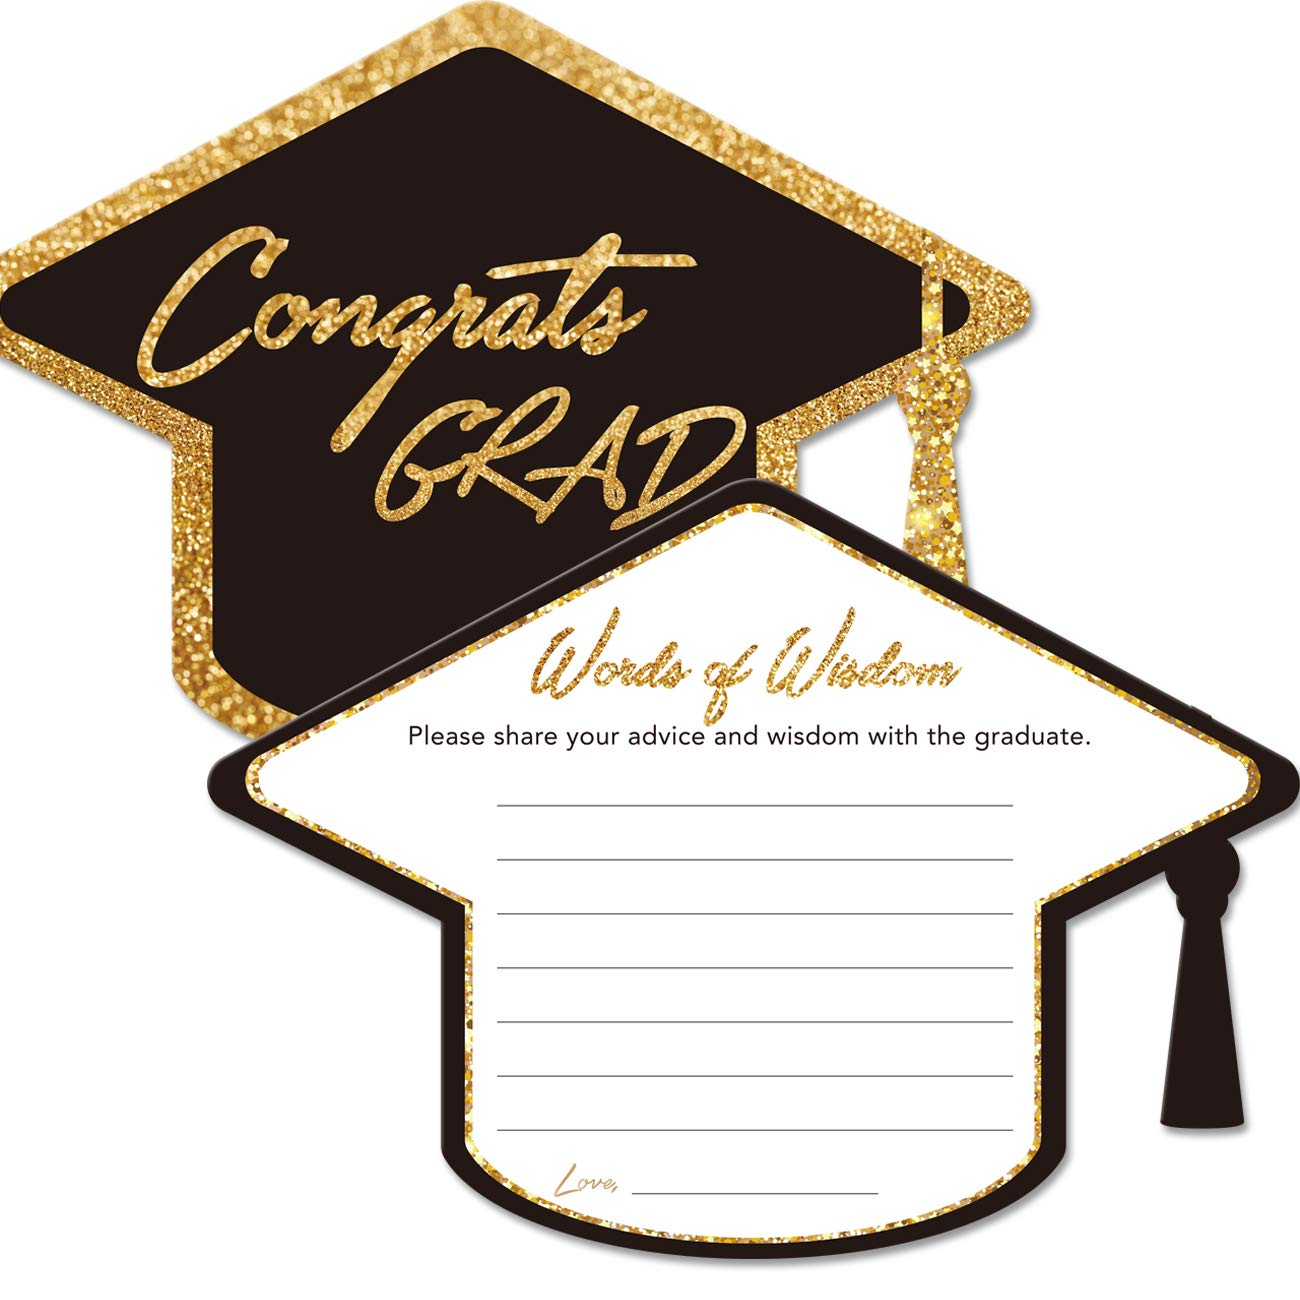 Graduation Advice Cards for The Graduate (50 Pack), High School or College Graduation Party Games Decorations Supplies, Well Wishes Cards for Graduates